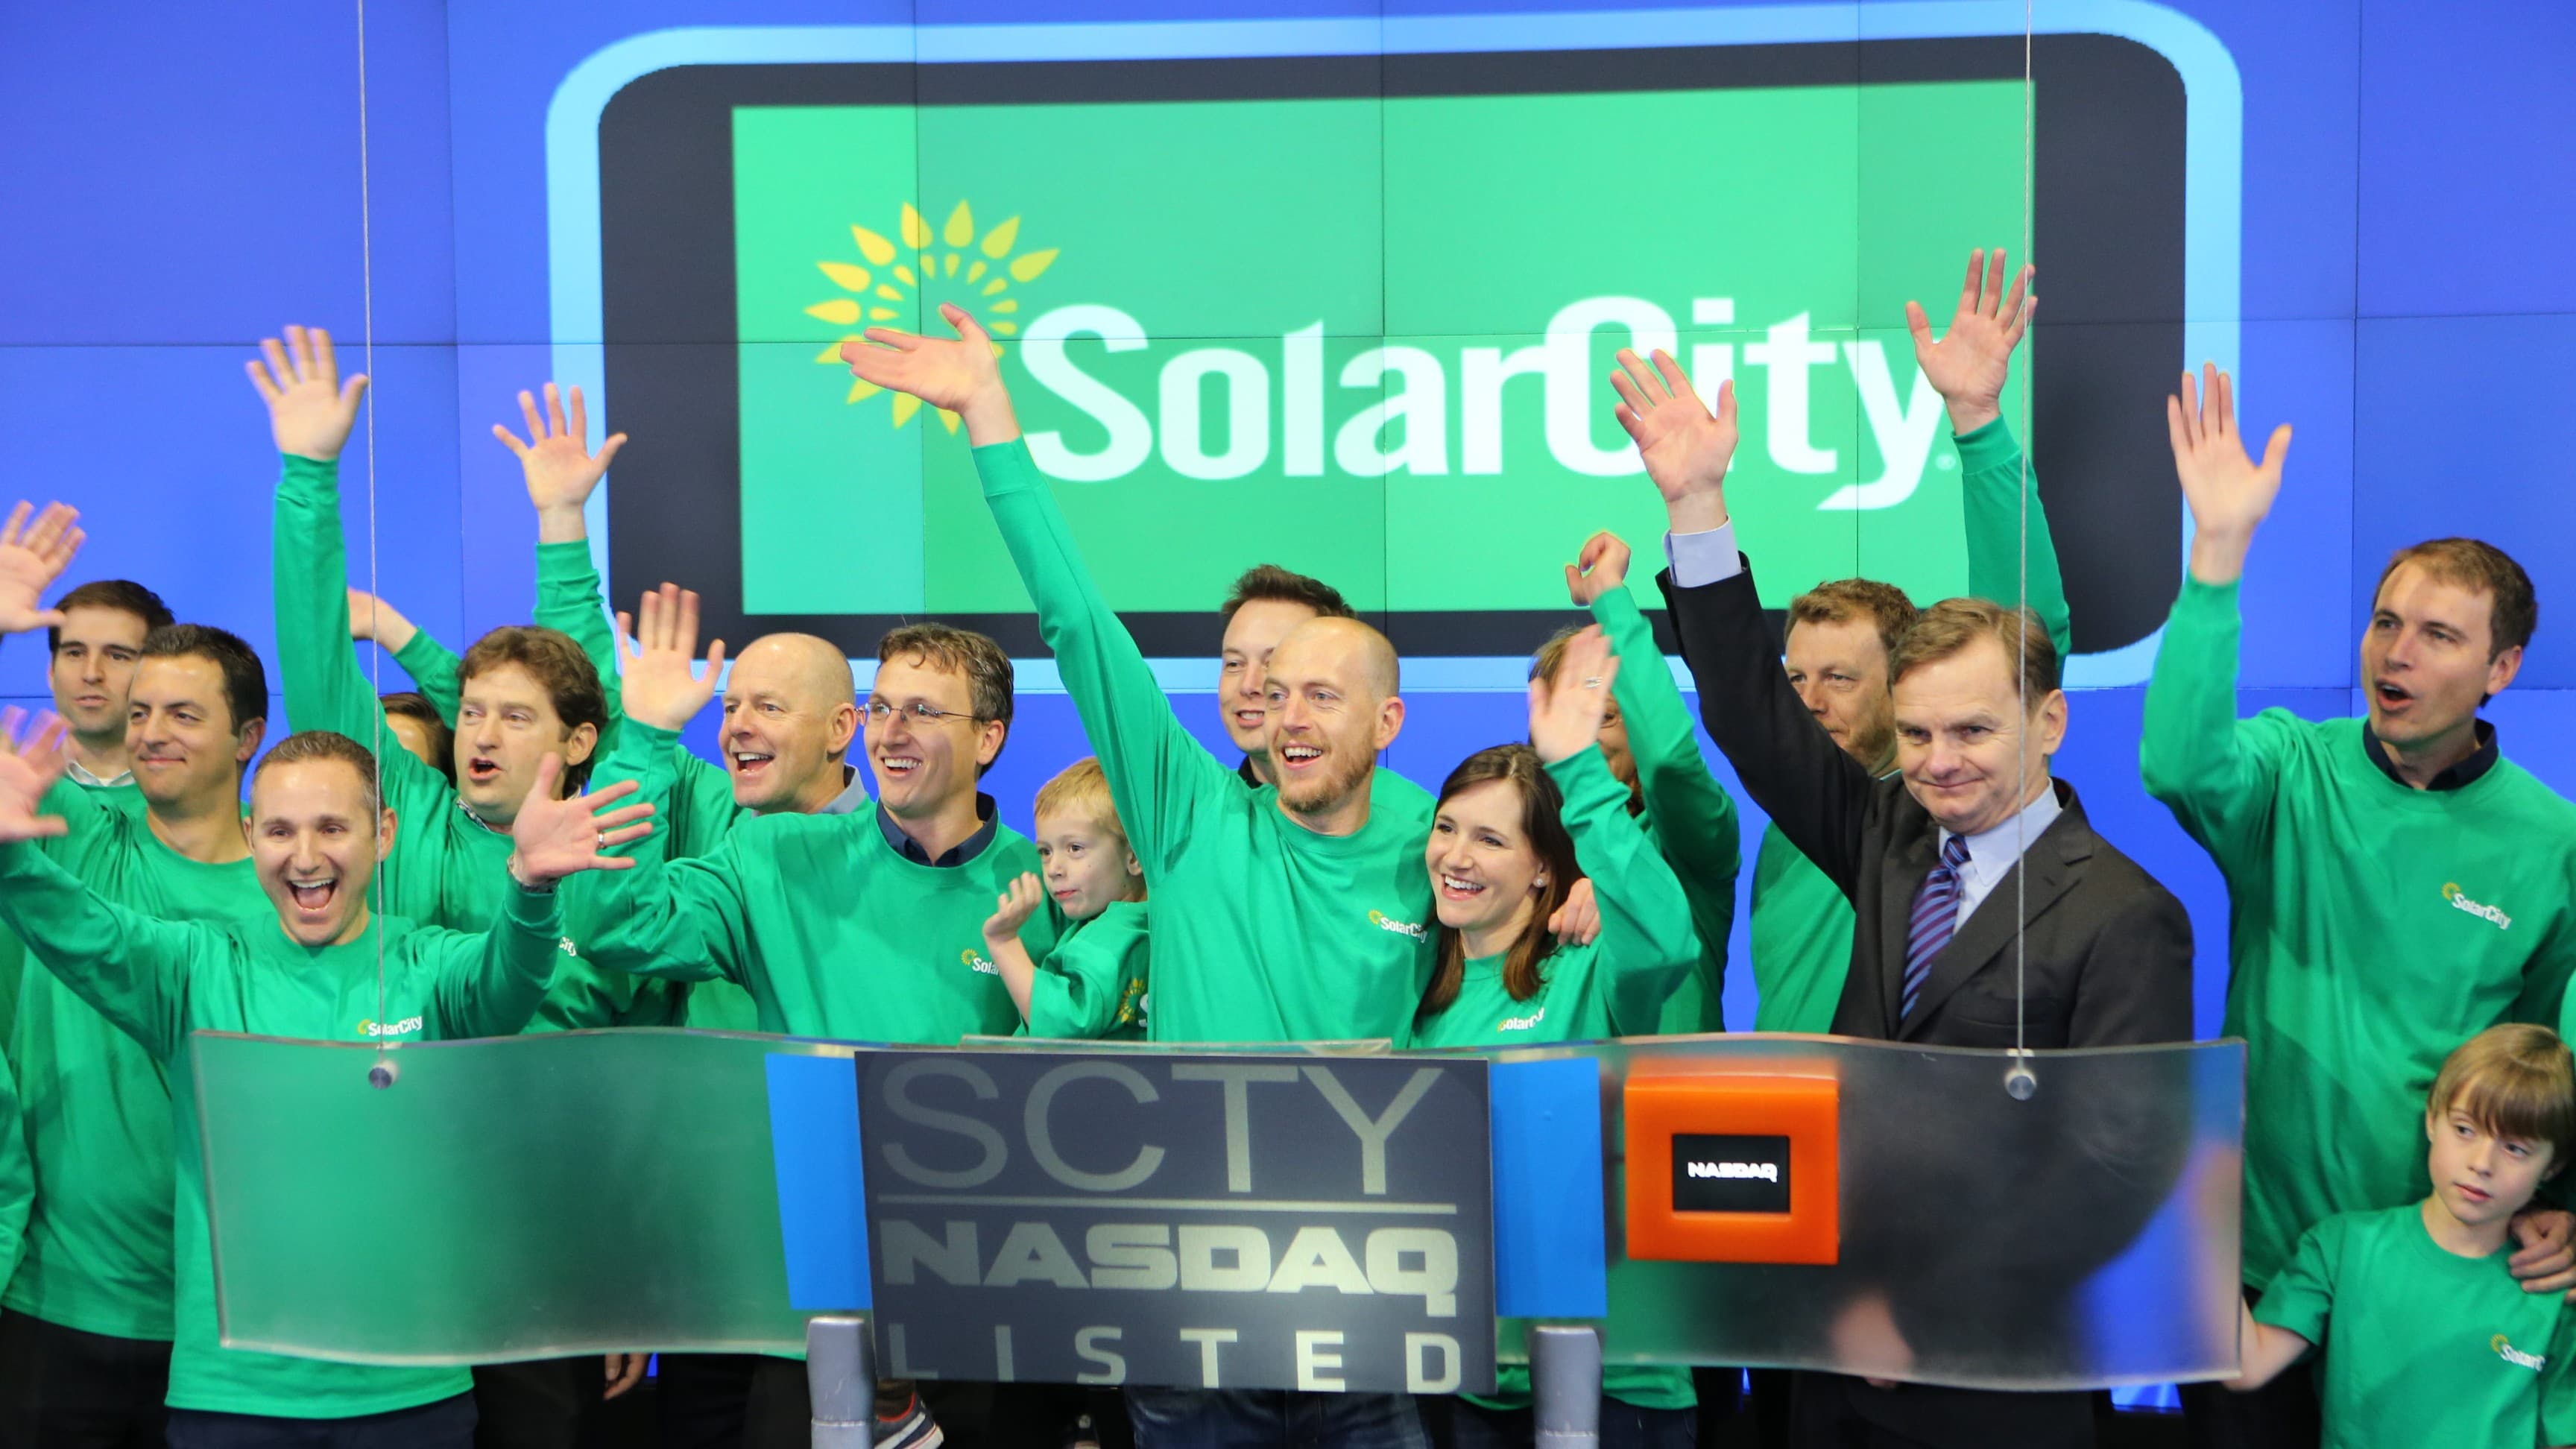 SolarCity Acquires Silevo, Plans to Build One of the Largest Solar Panel Plants in the World